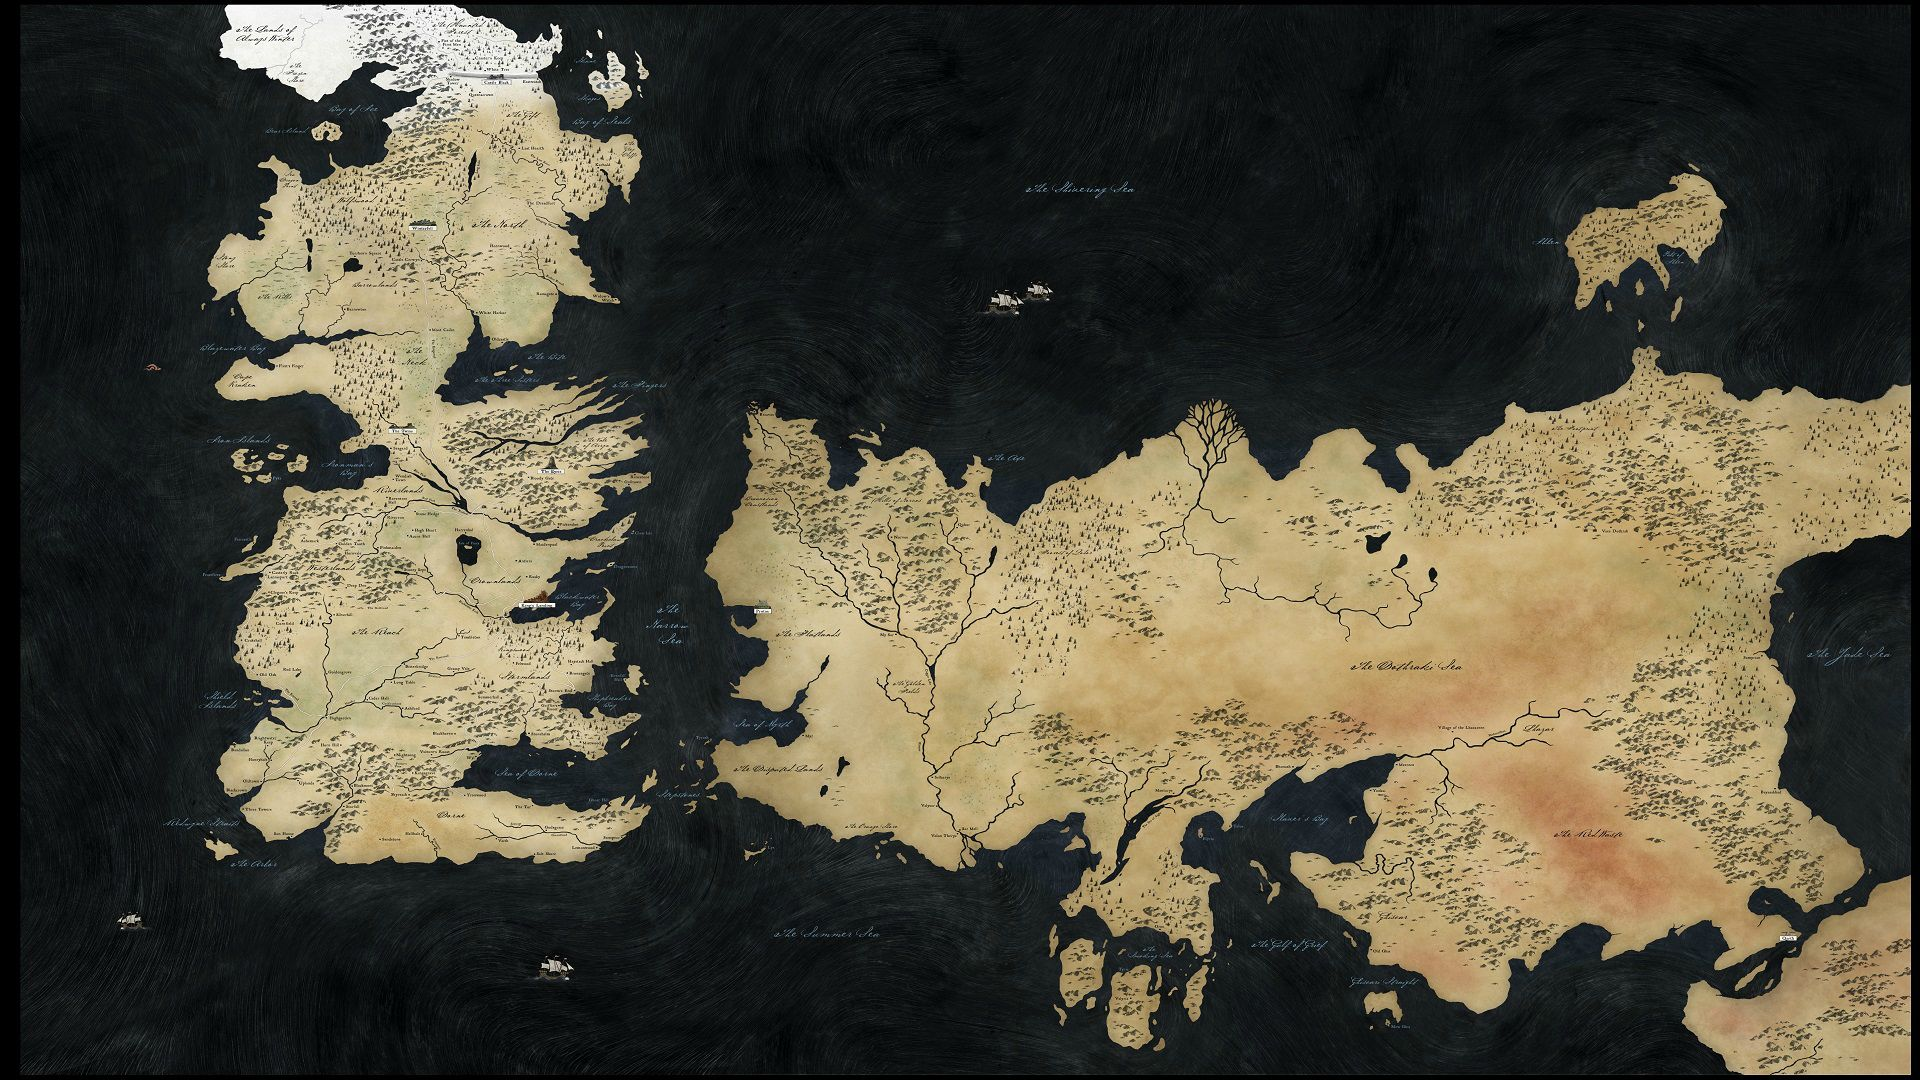 game of thrones karte wallpaper Game Of Thrones HD Wallpaper | Background Image | 1920x1080 | ID